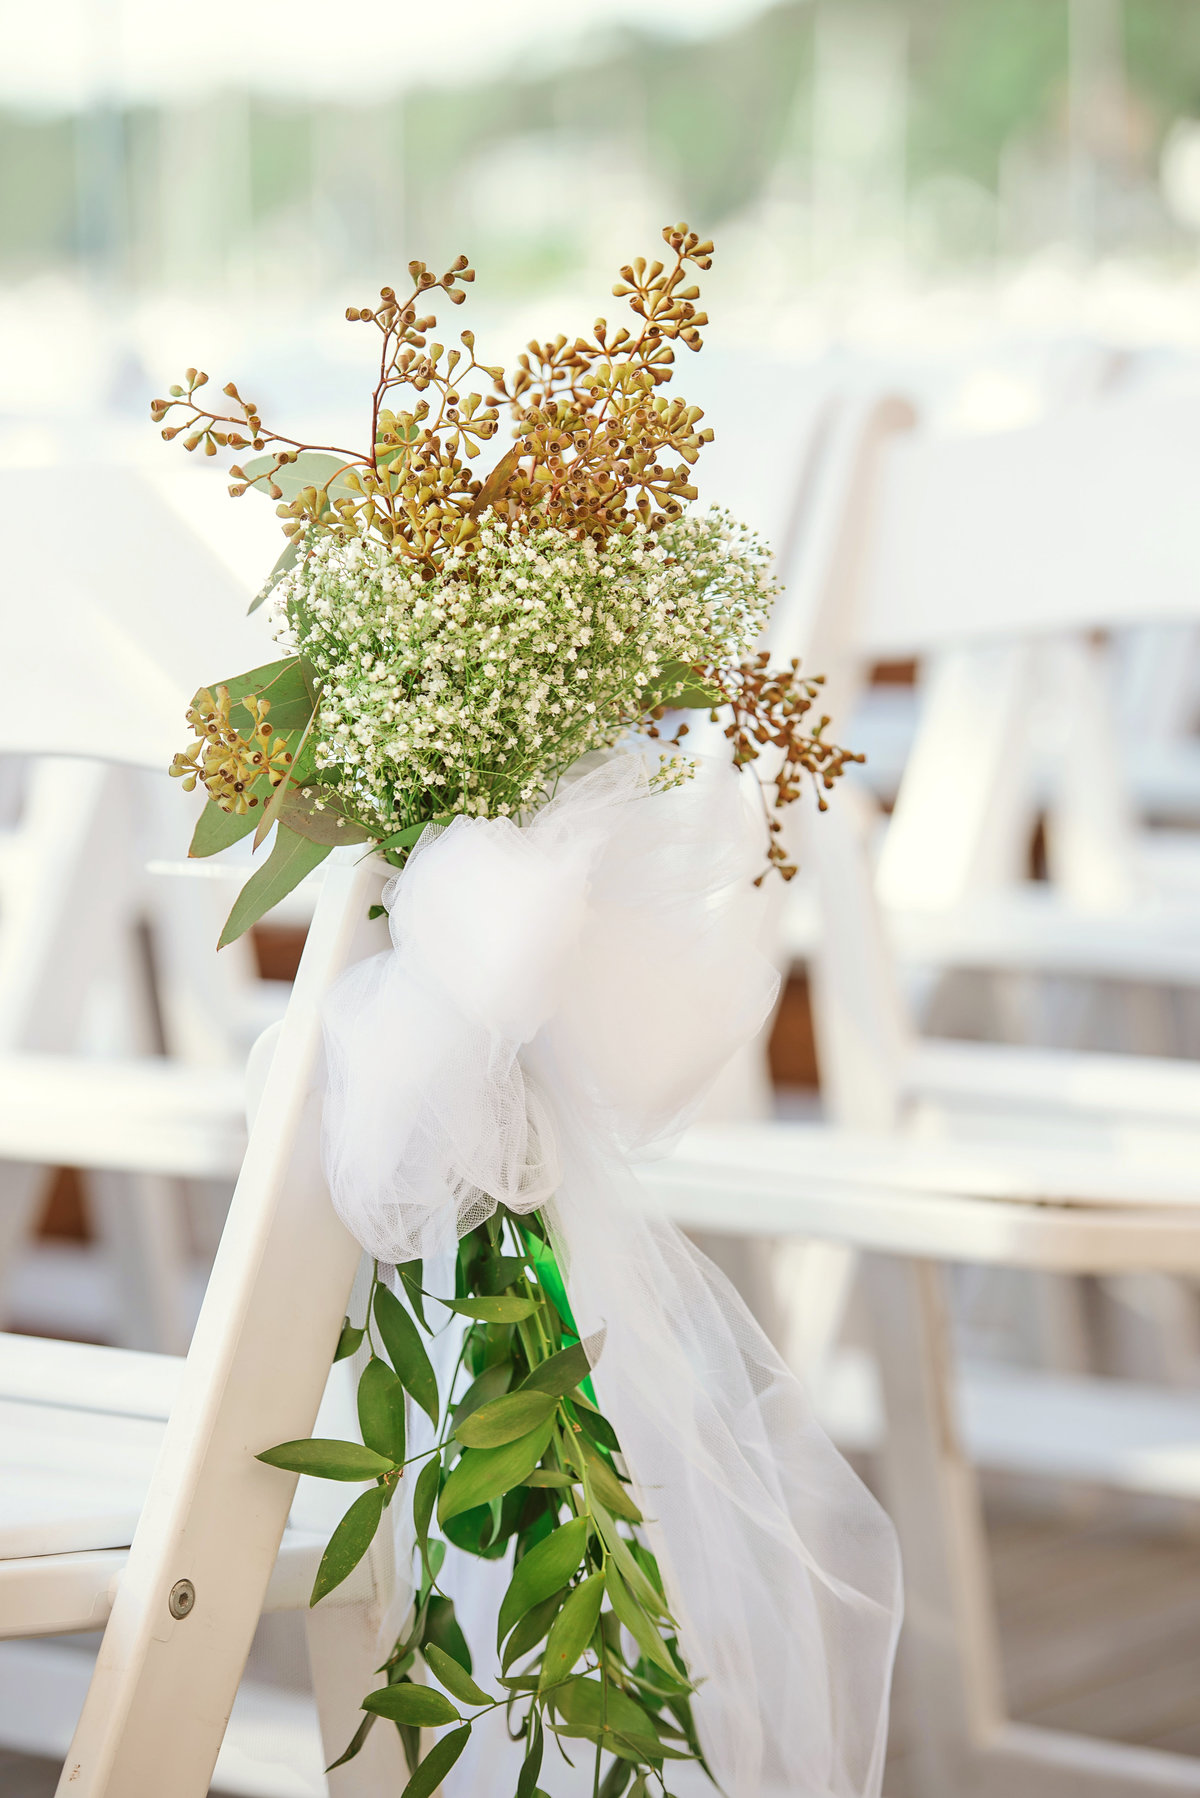 Baby breath flowers placed on chairs for wedding ceremony